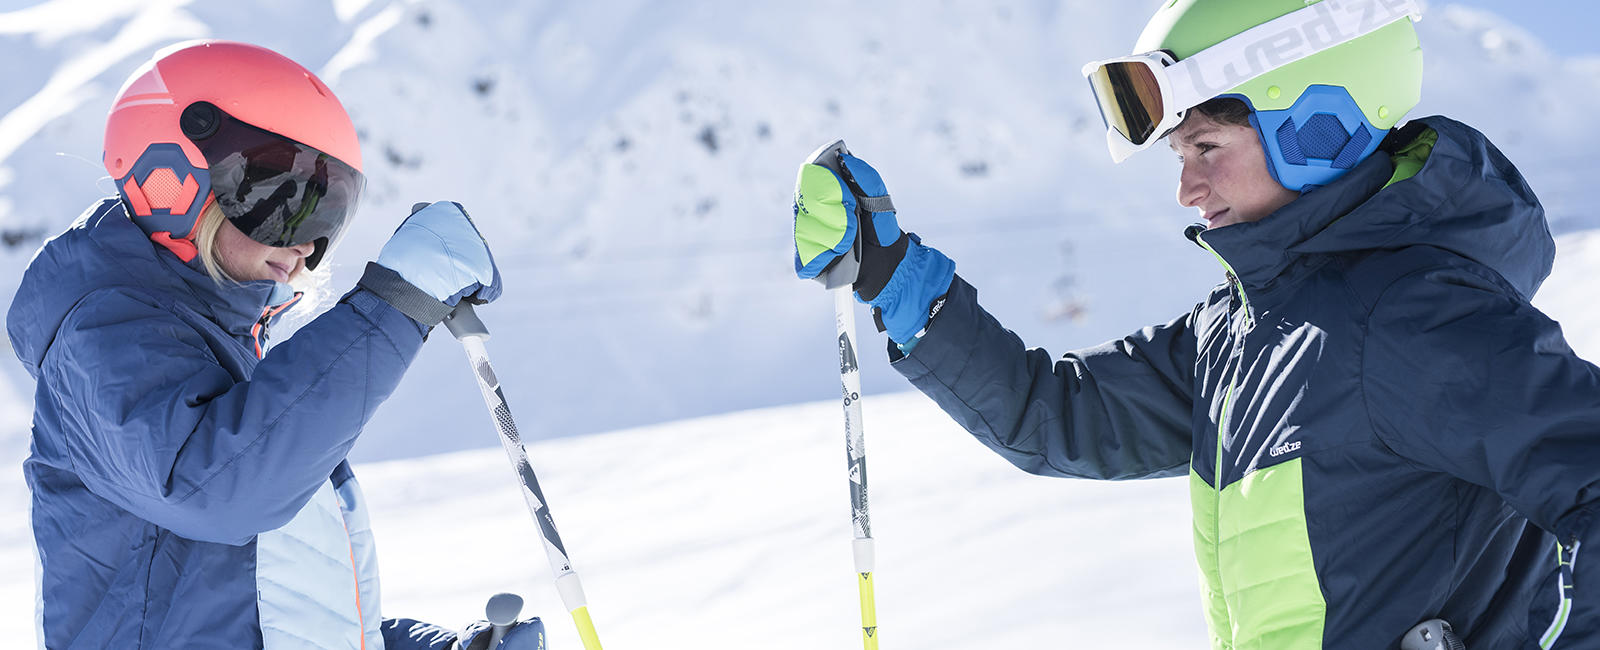 How to Keep Your Hands Warm When Skiing